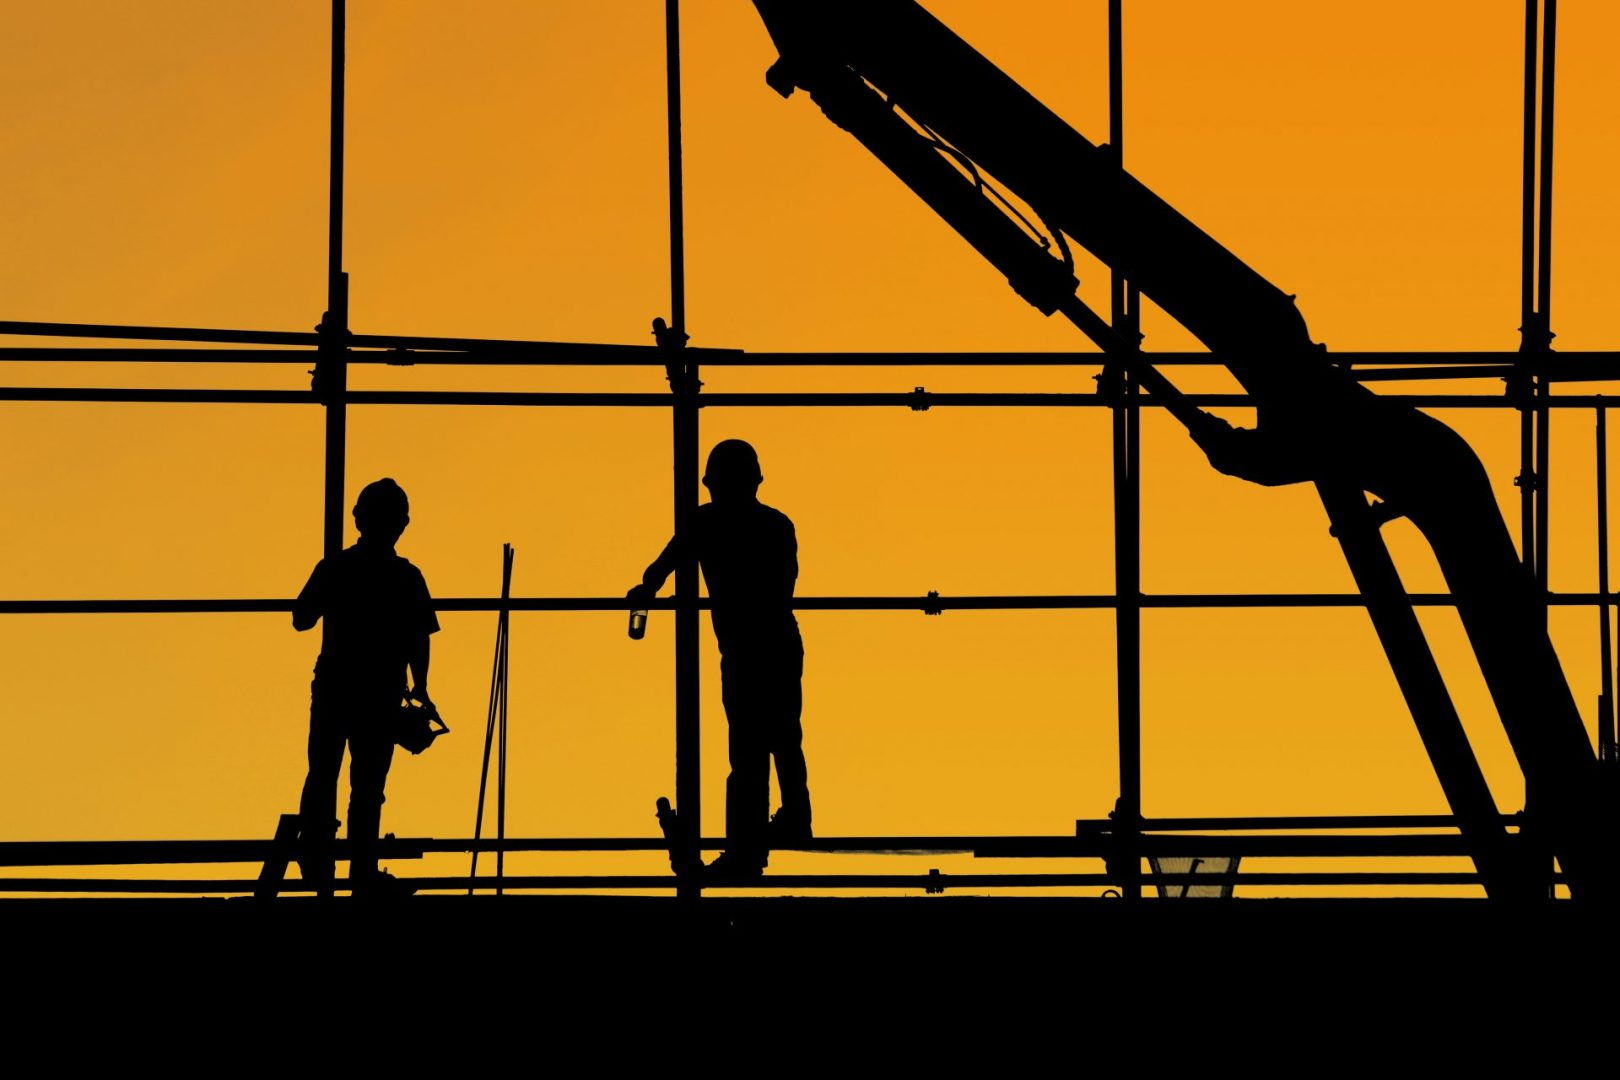 Silhouette image of works on scaffolding for website J&J Commercial Finance